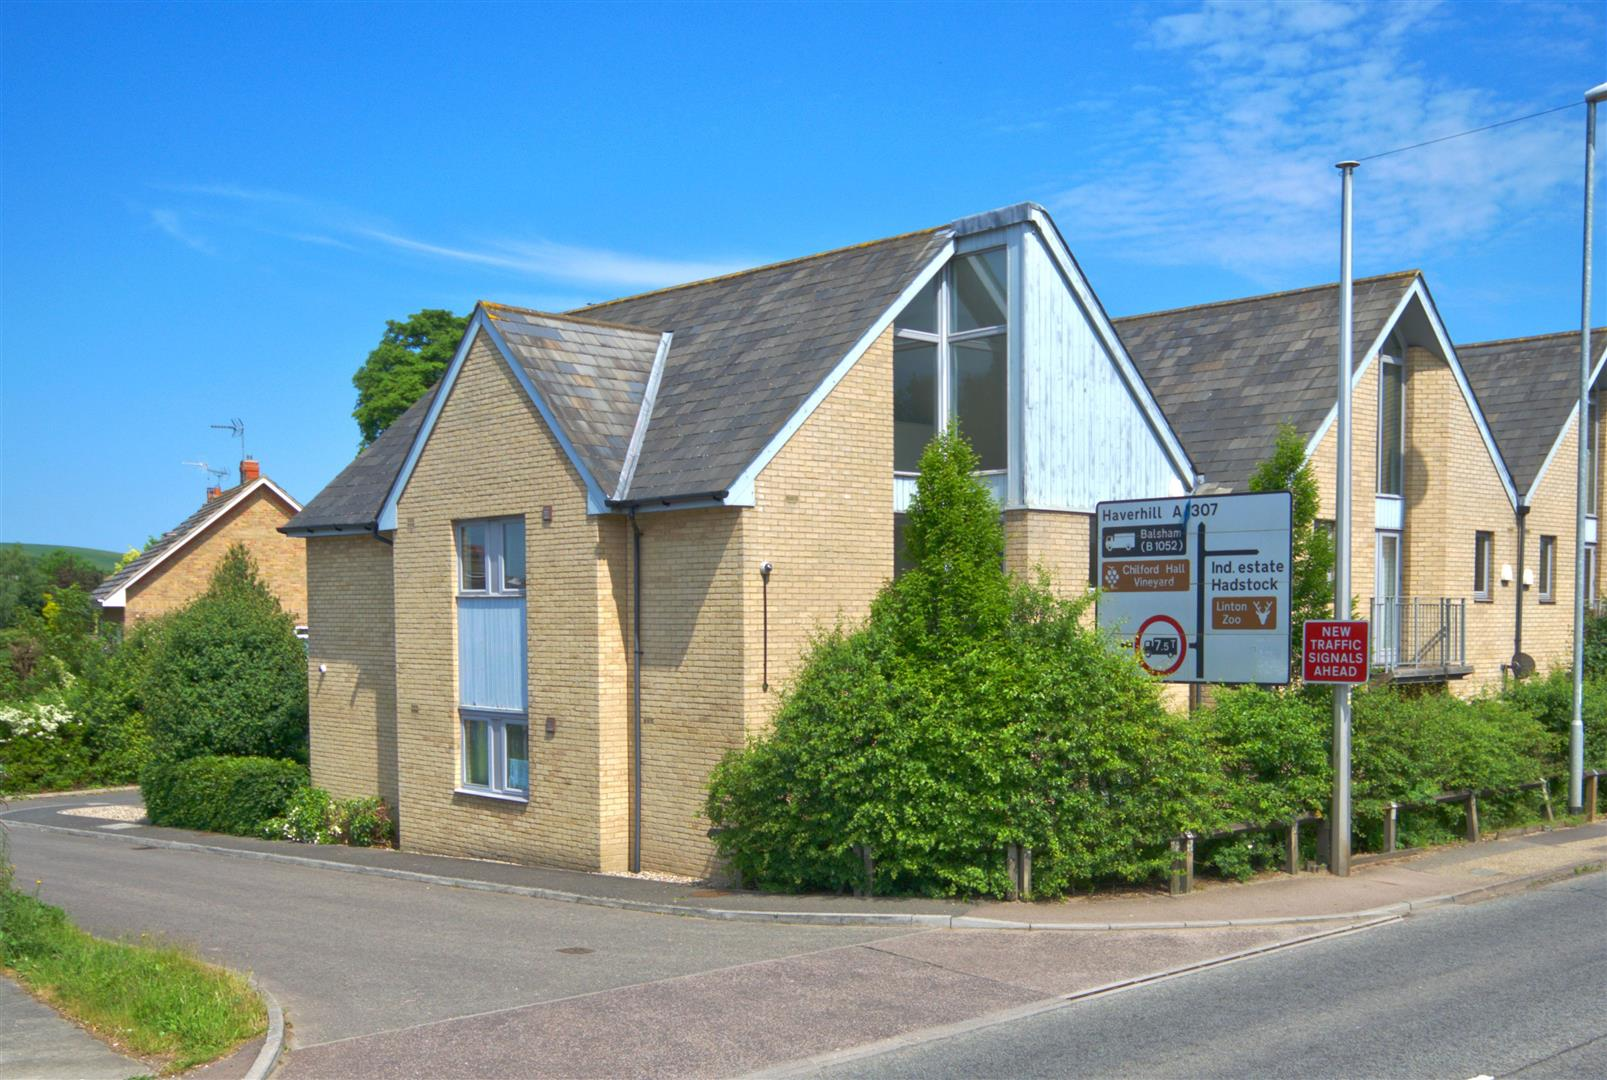 Flat 2, Flint Court for sale in Linton